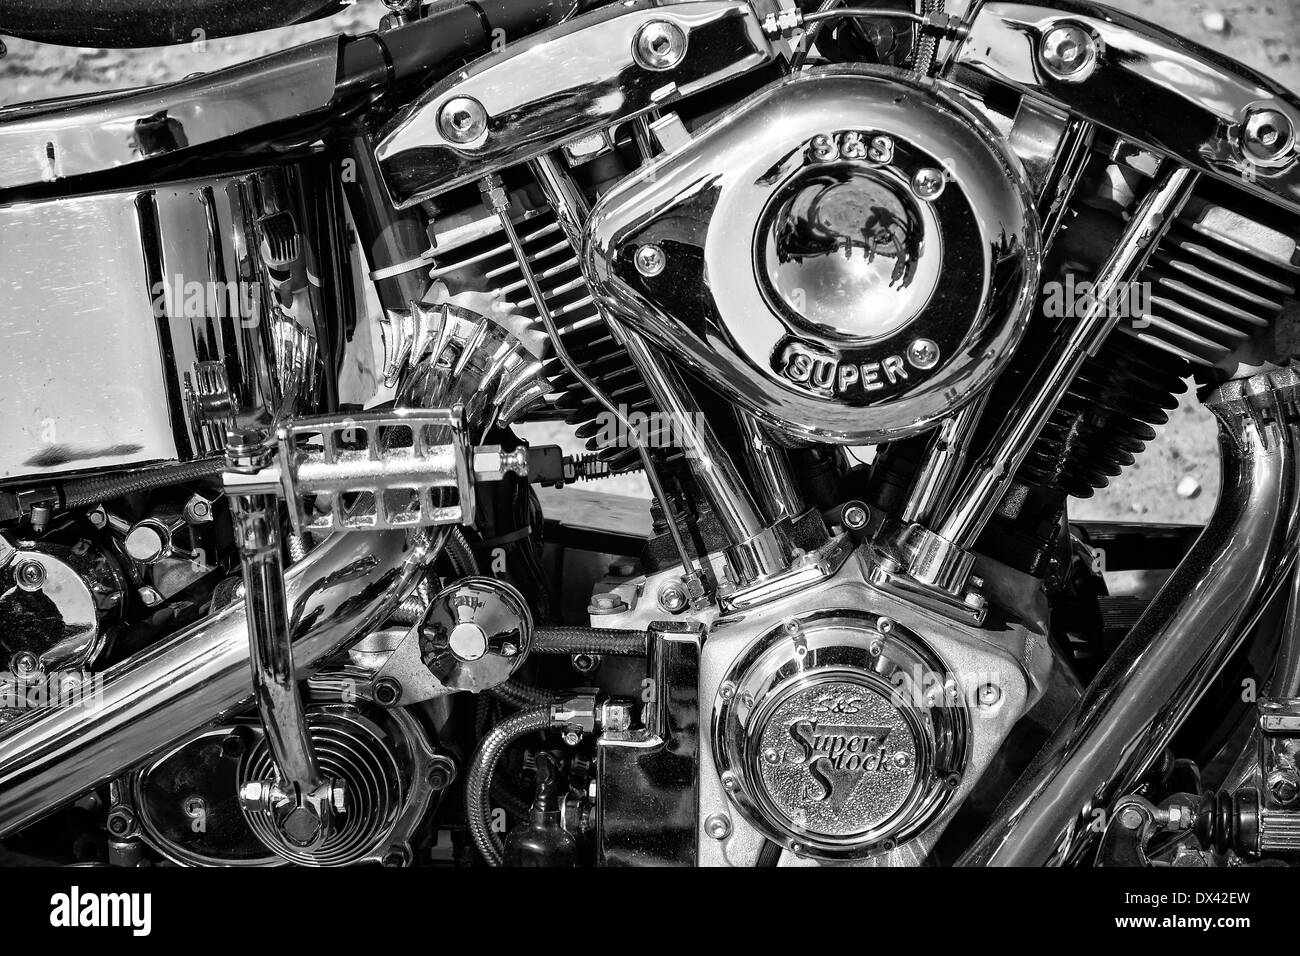 Where To Buy Old Suzuki Motorcycle Parts